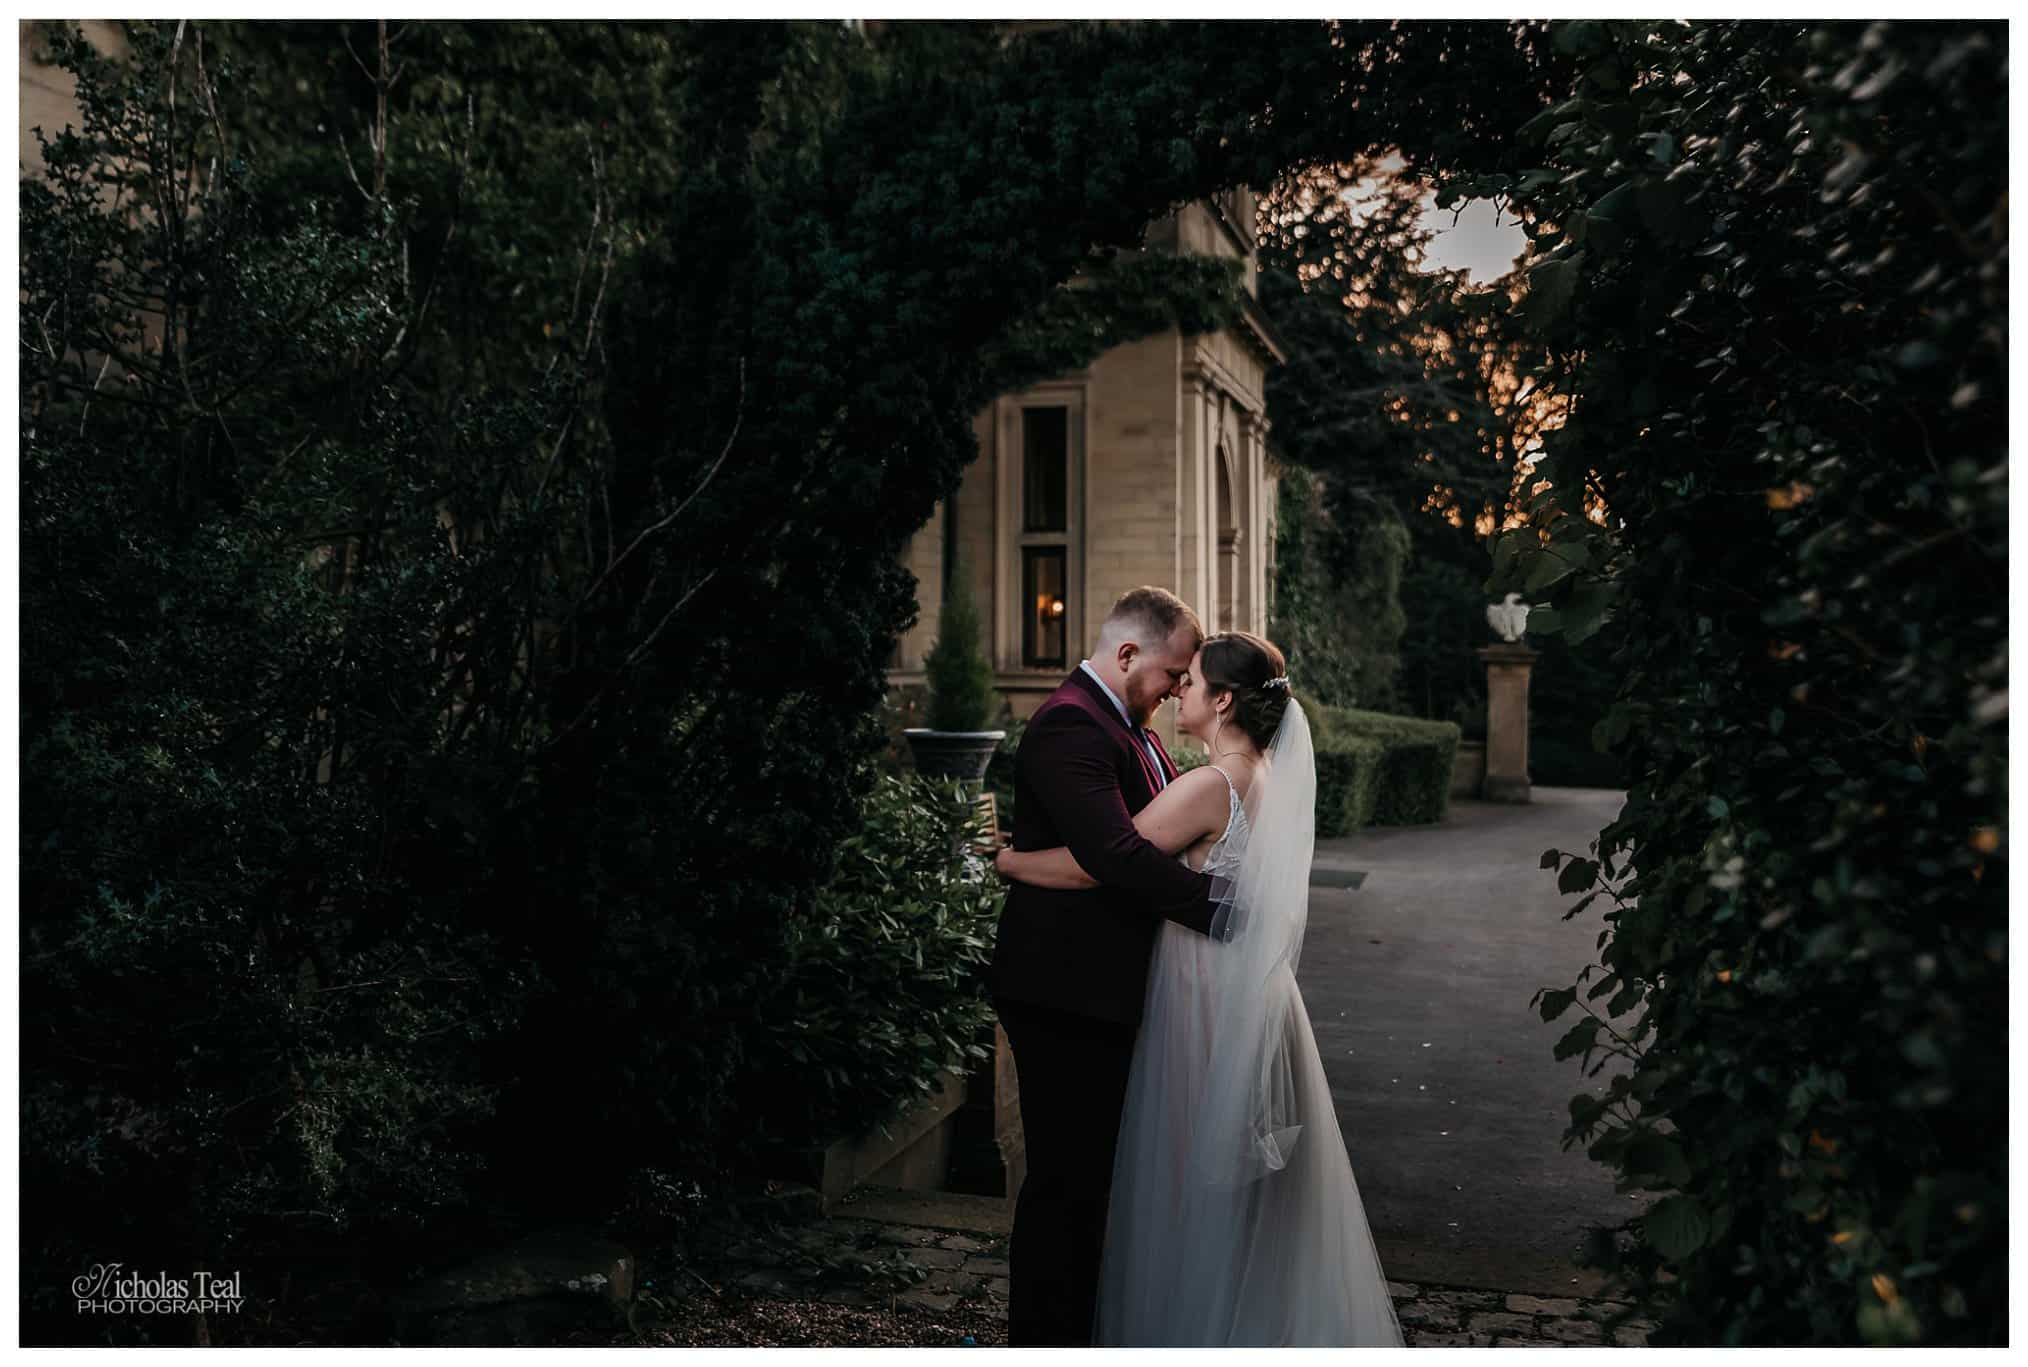 beutifull posed image of bride and groom kissing under a arch with Bagden Hall visible behind them - Bagden Hall